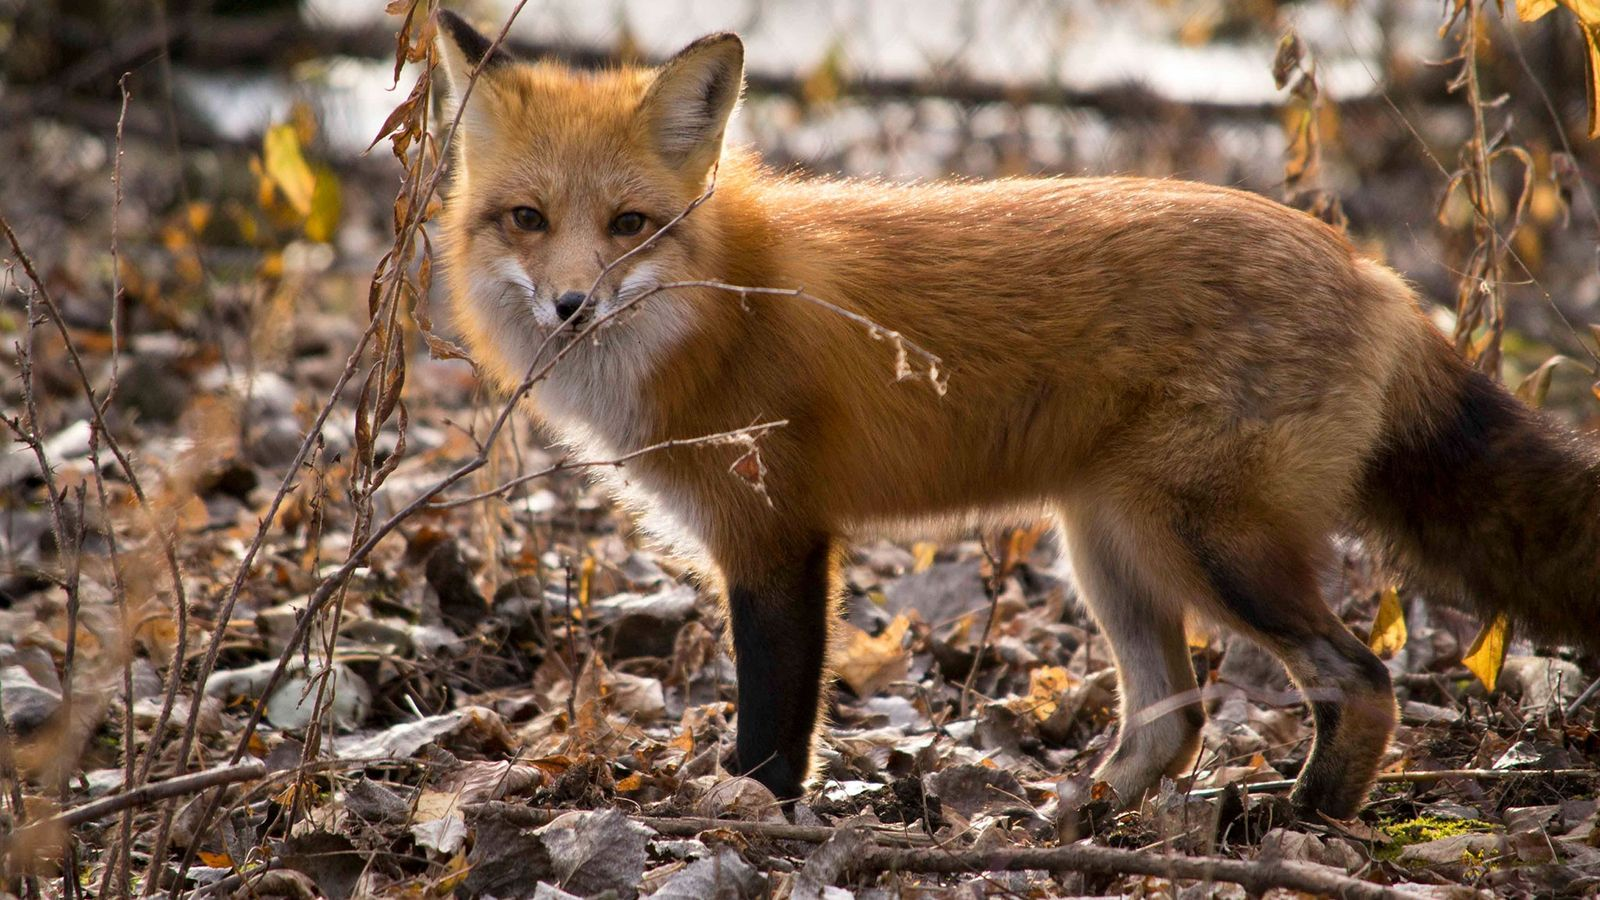 Foxes and other animals with fluffy tails can use their tails to help them balance if ...